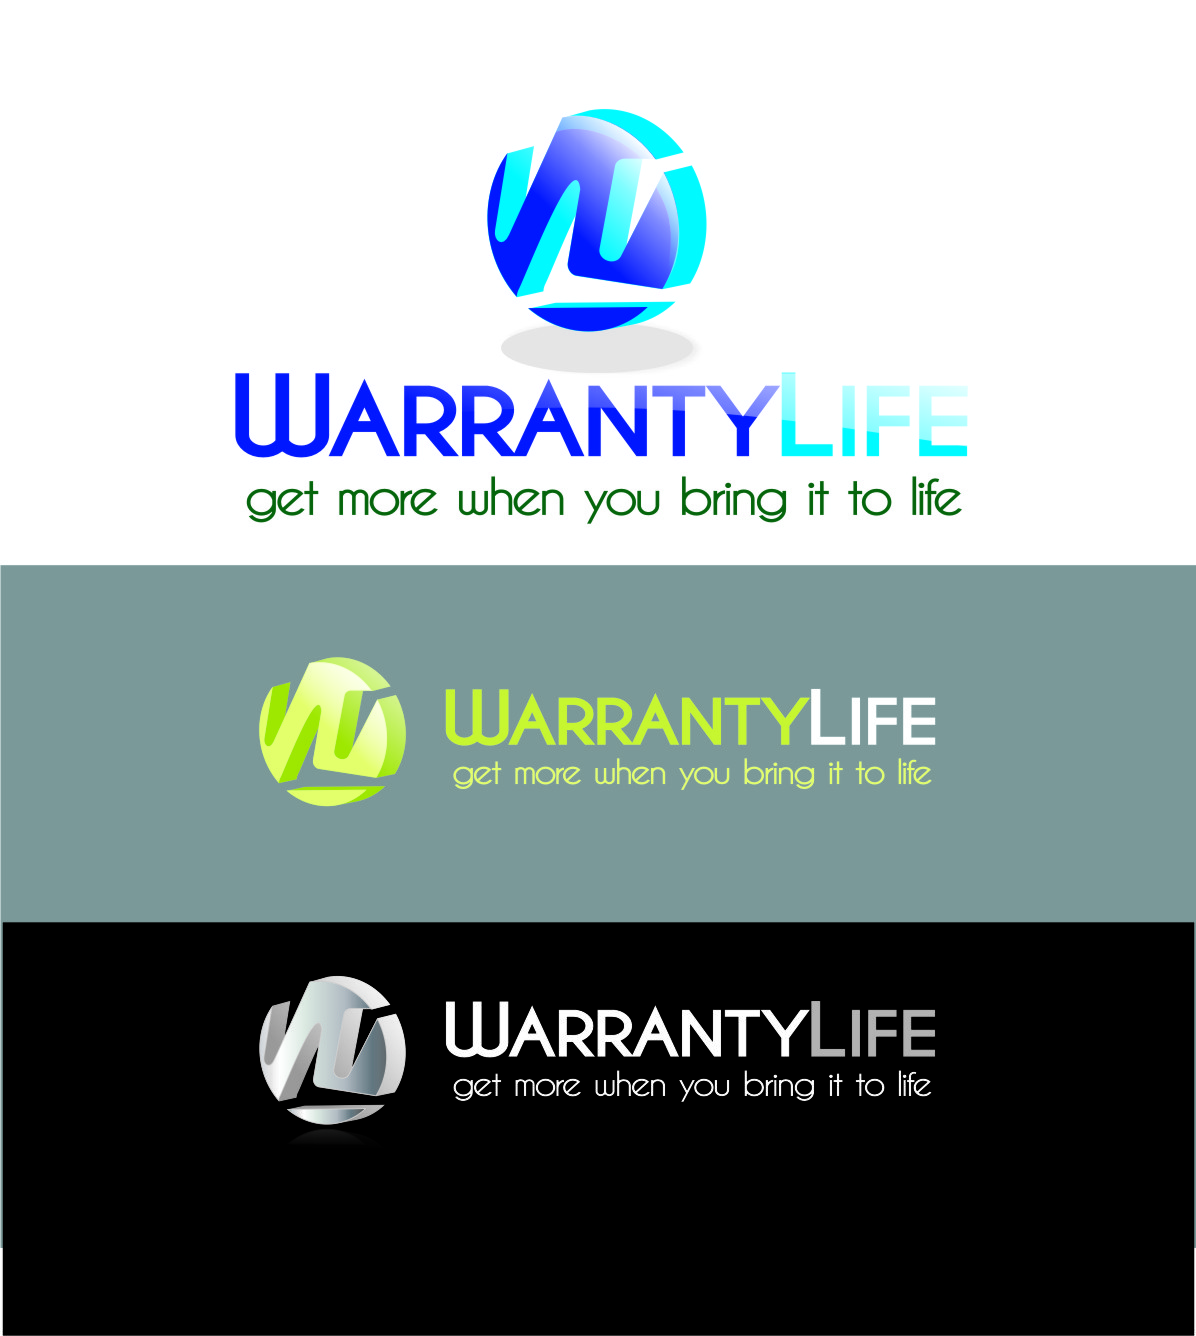 Logo Design by Private User - Entry No. 125 in the Logo Design Contest WarrantyLife Logo Design.